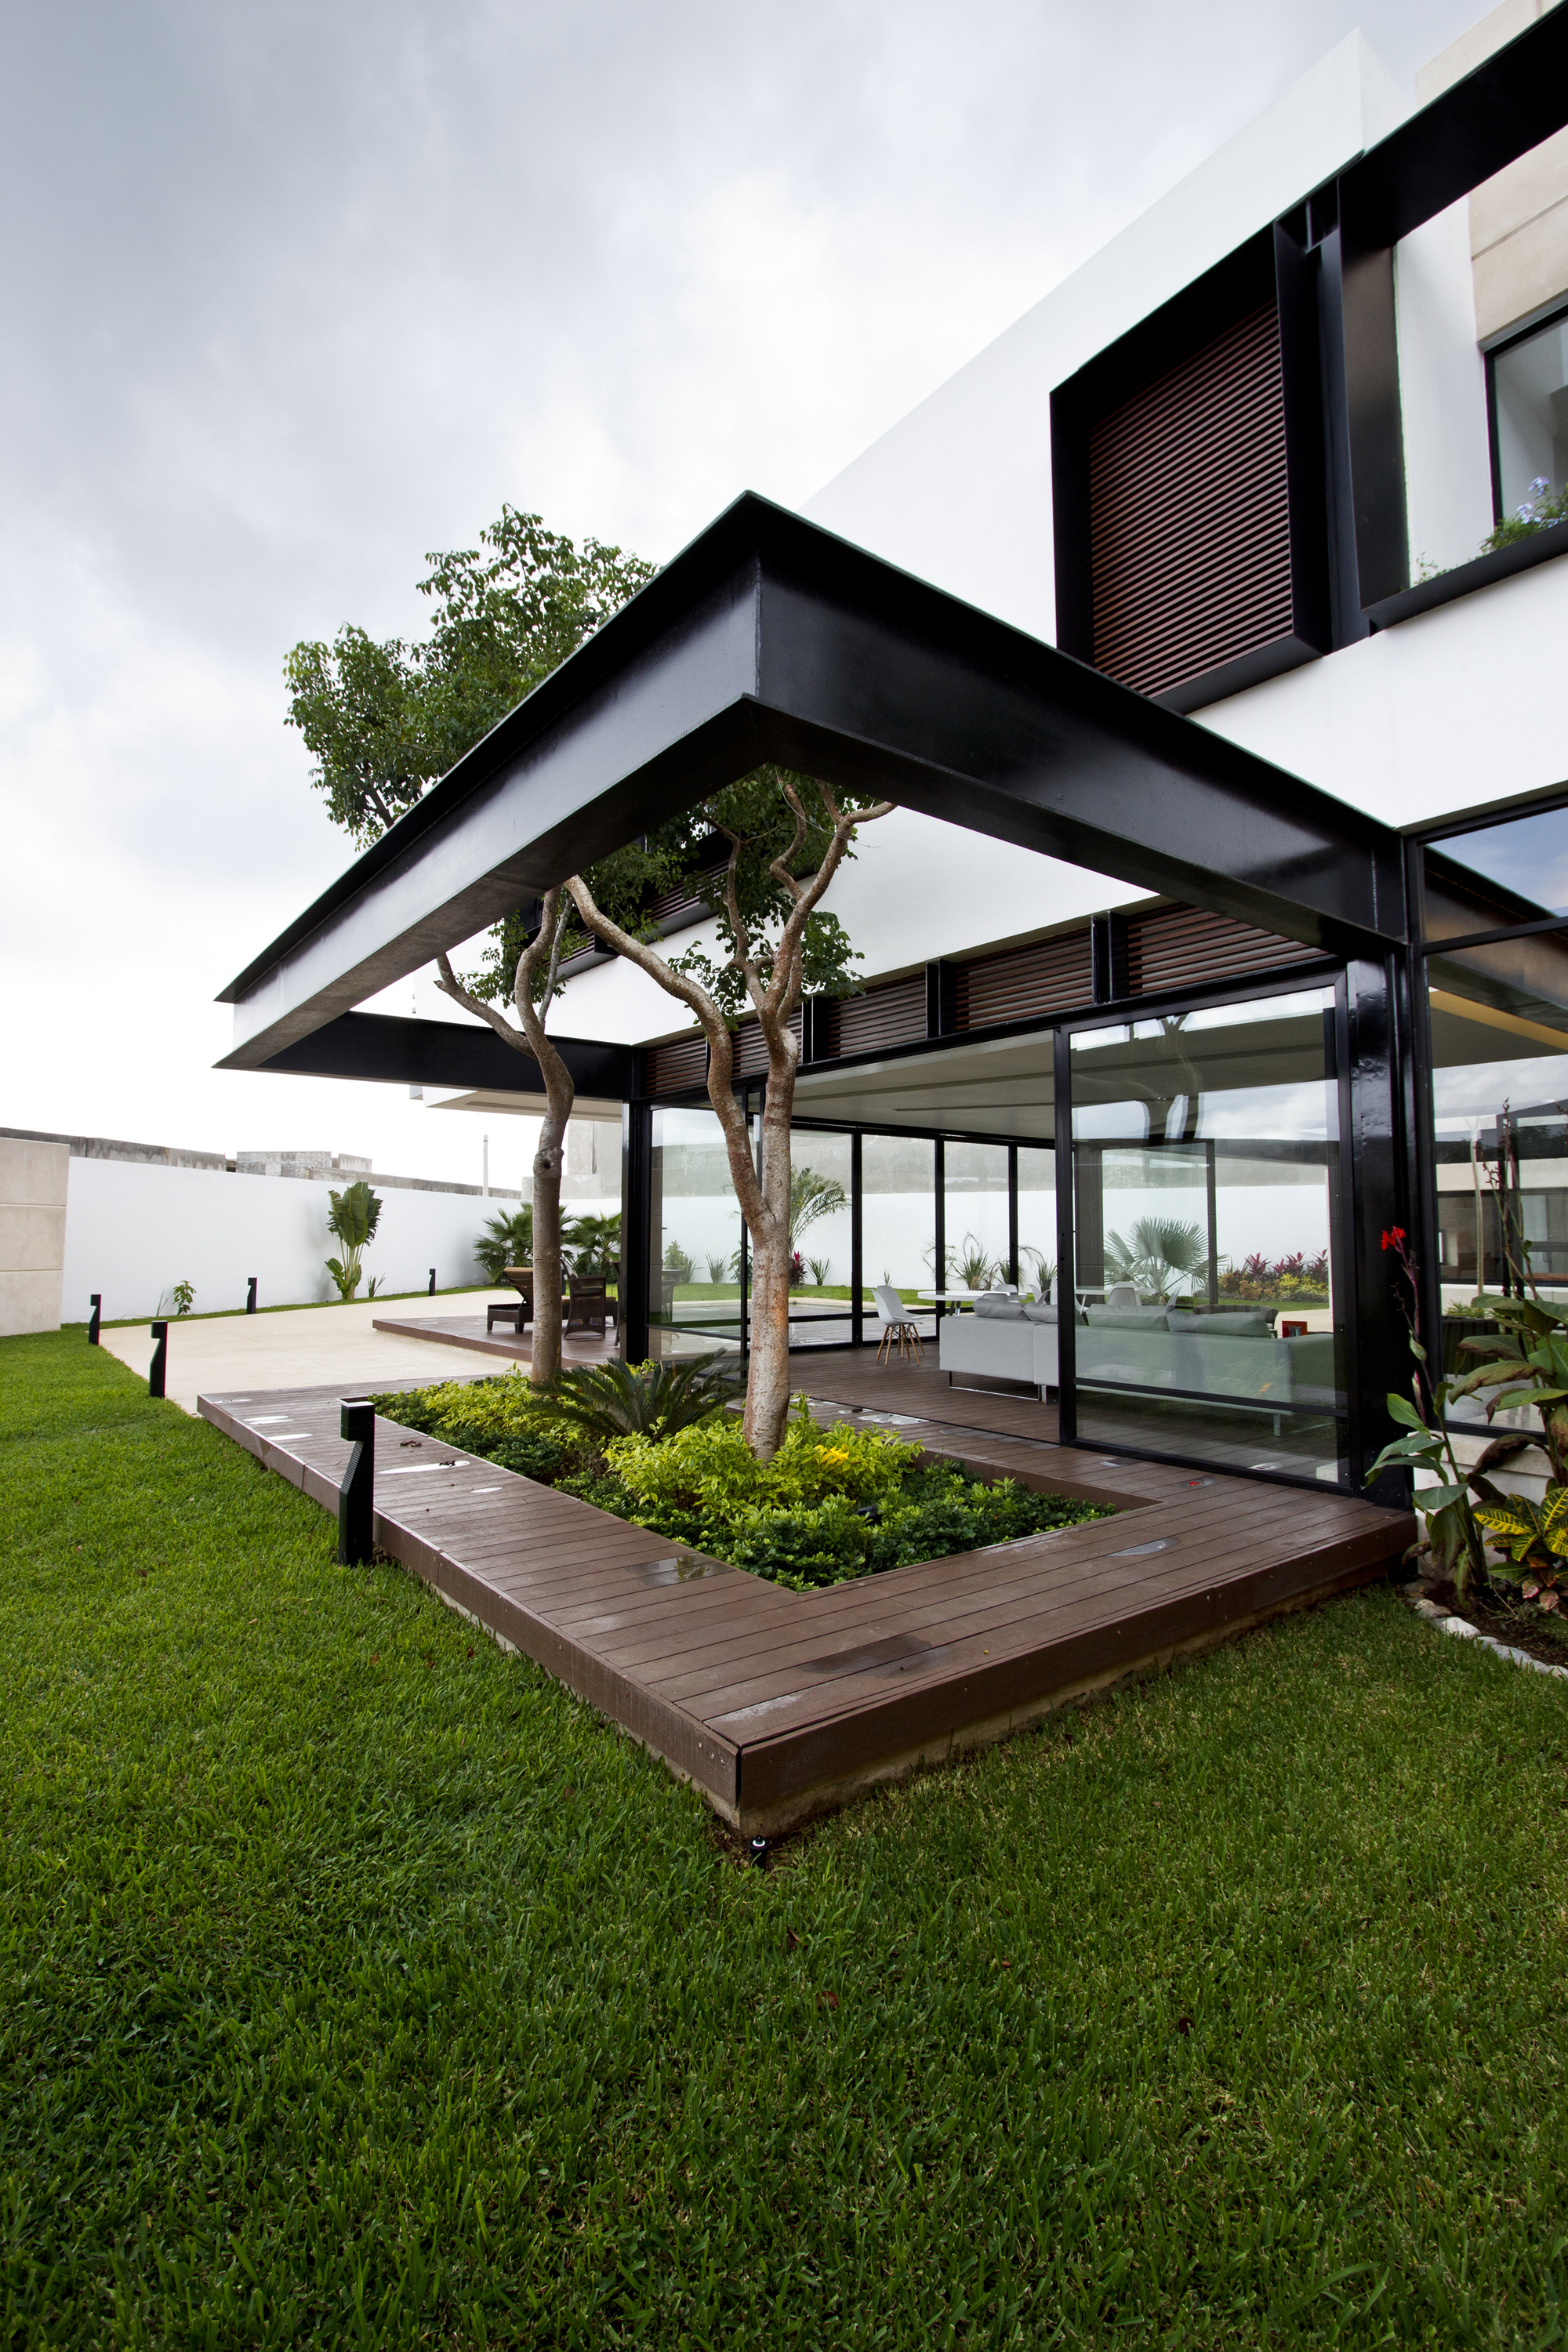 Contemporary-Comfort-At-The-Temozón-House-in-Yucatan-Mexico-3